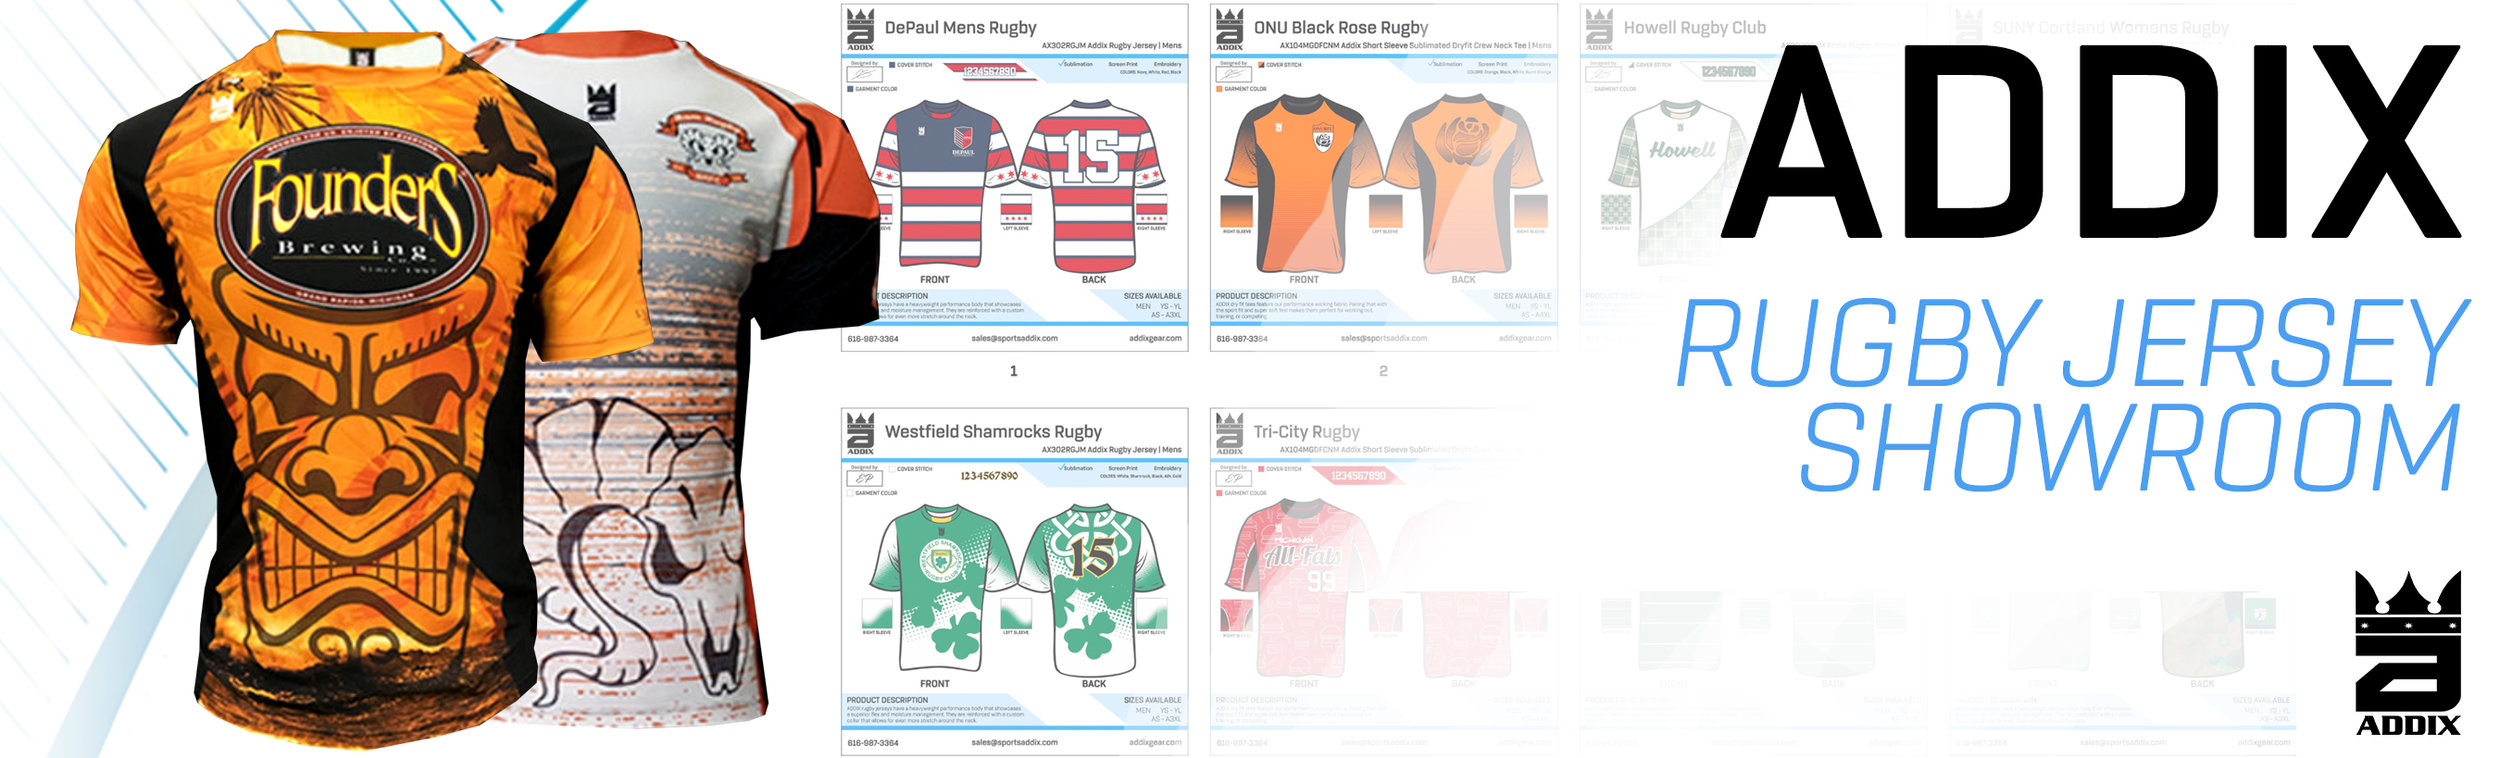 custom rugby jersey showroom.jpg